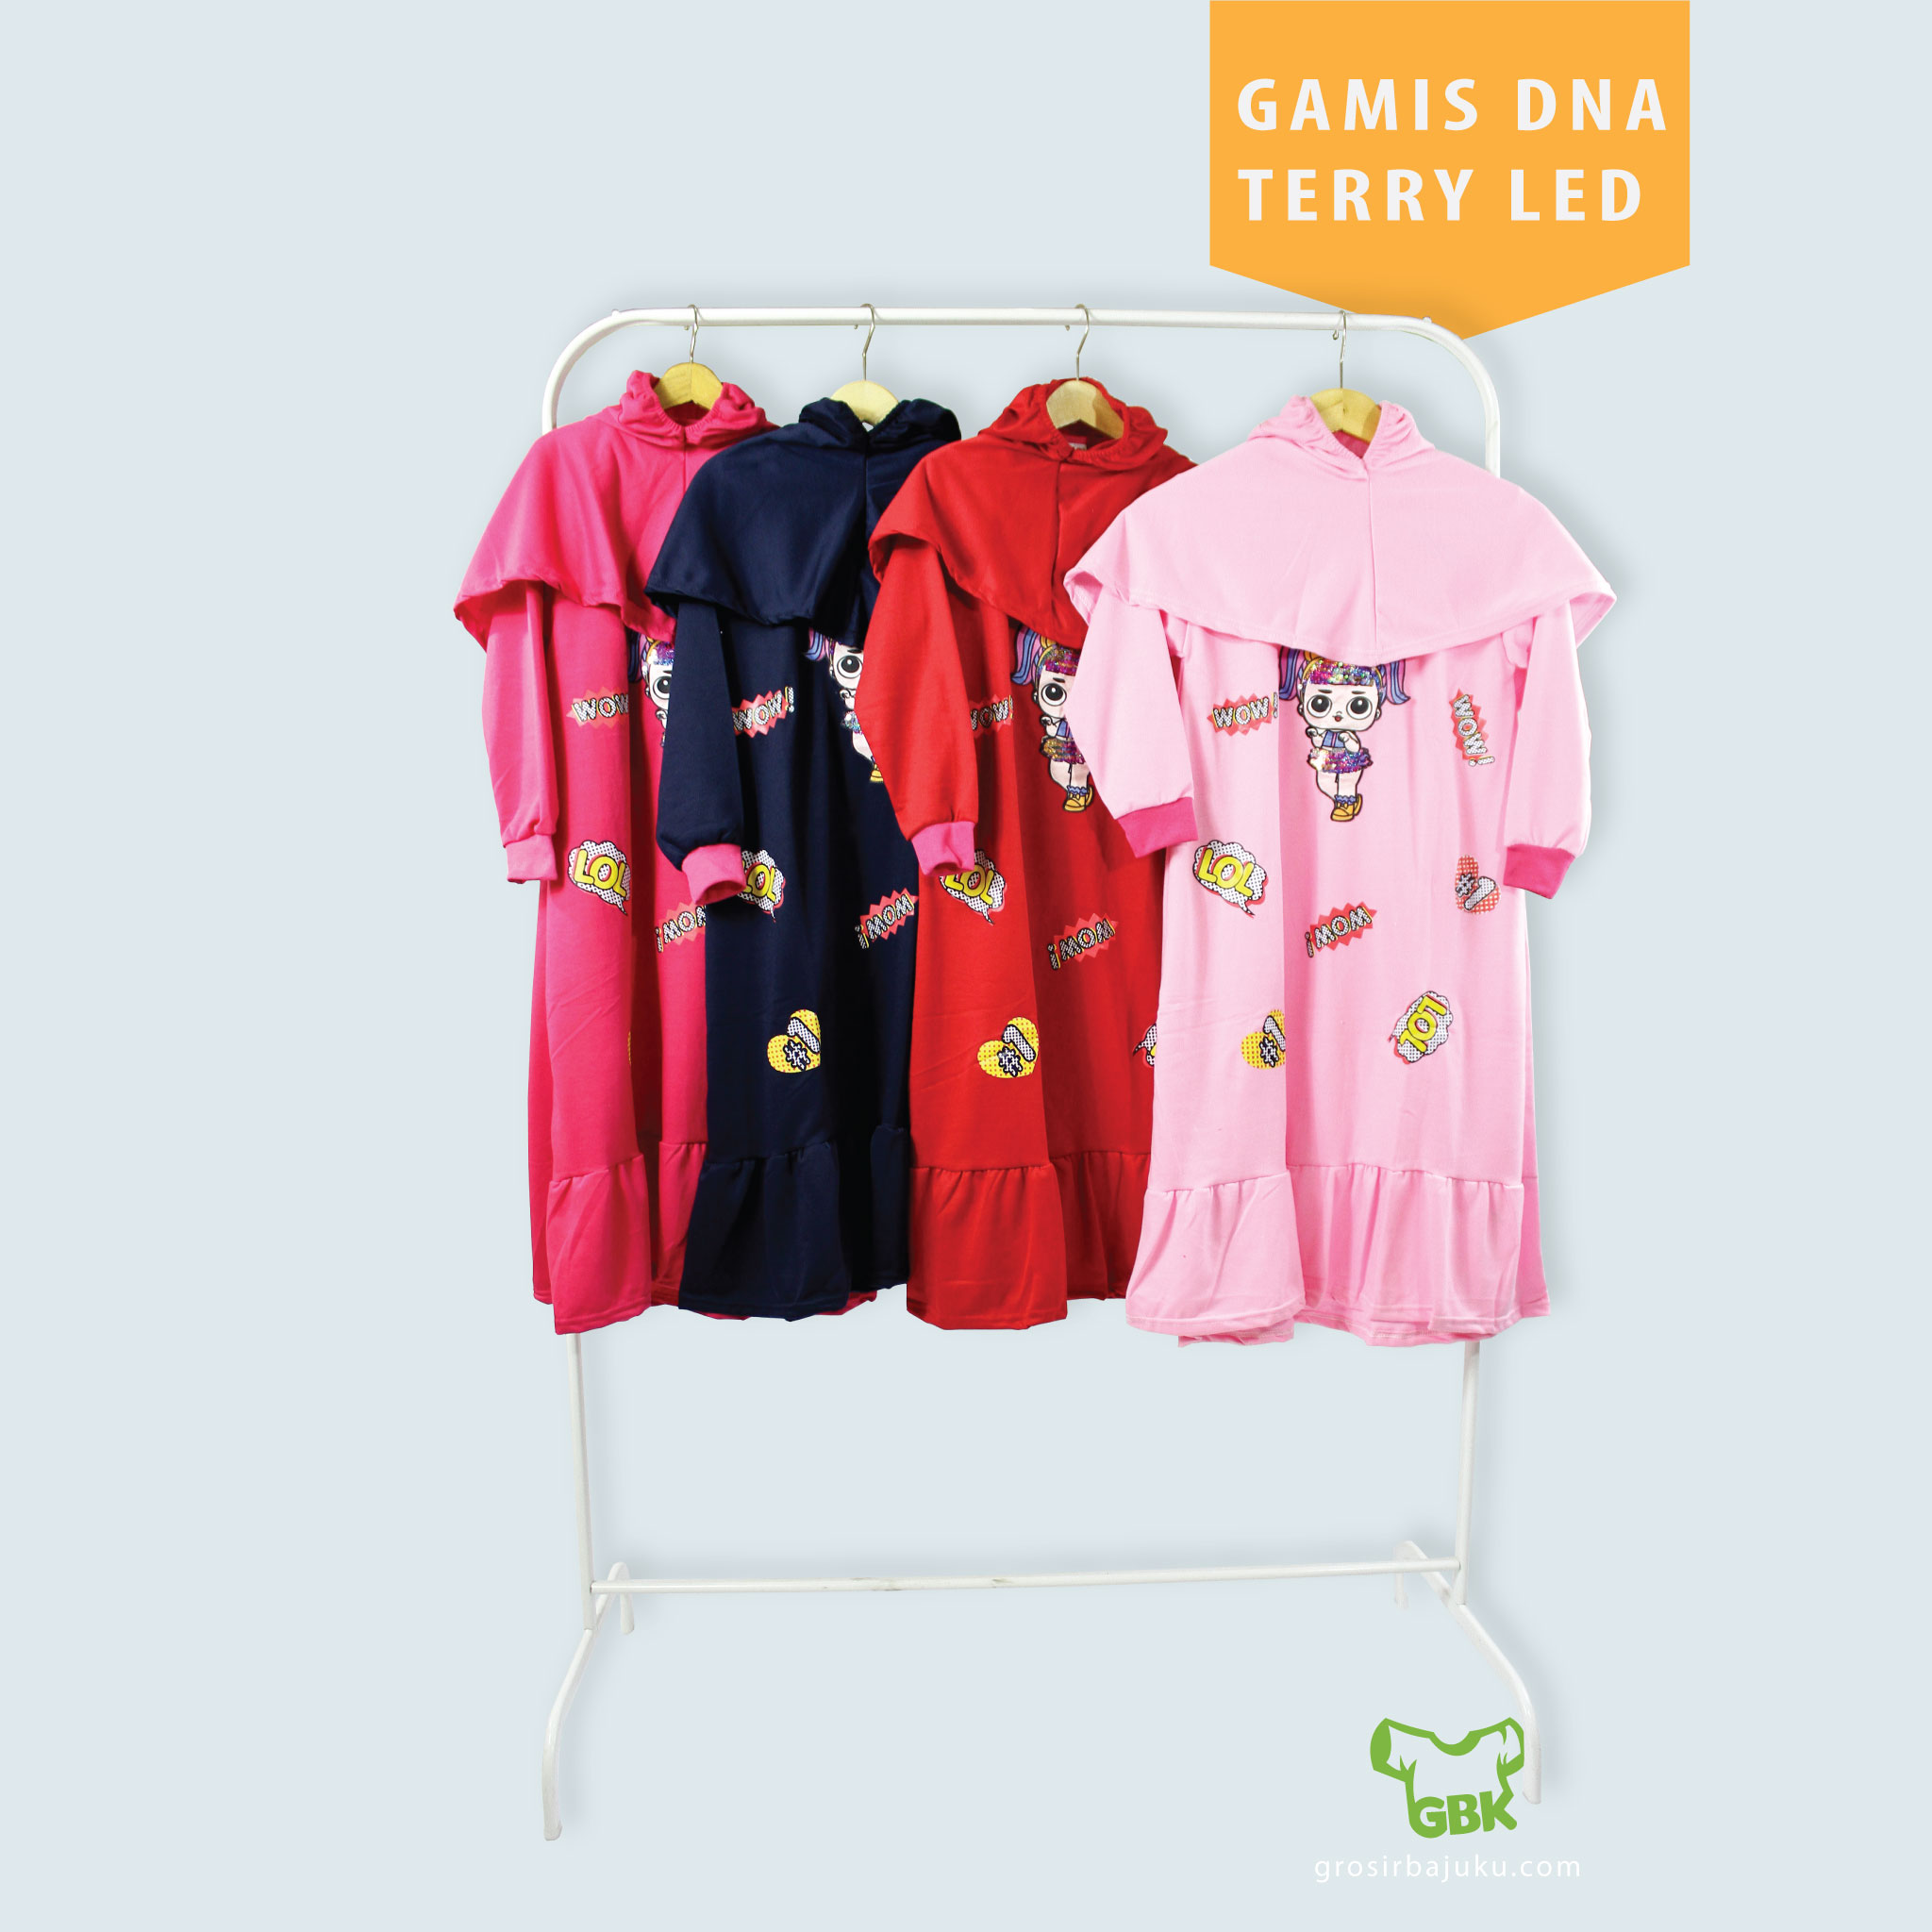 Gamis DNA Terry LED